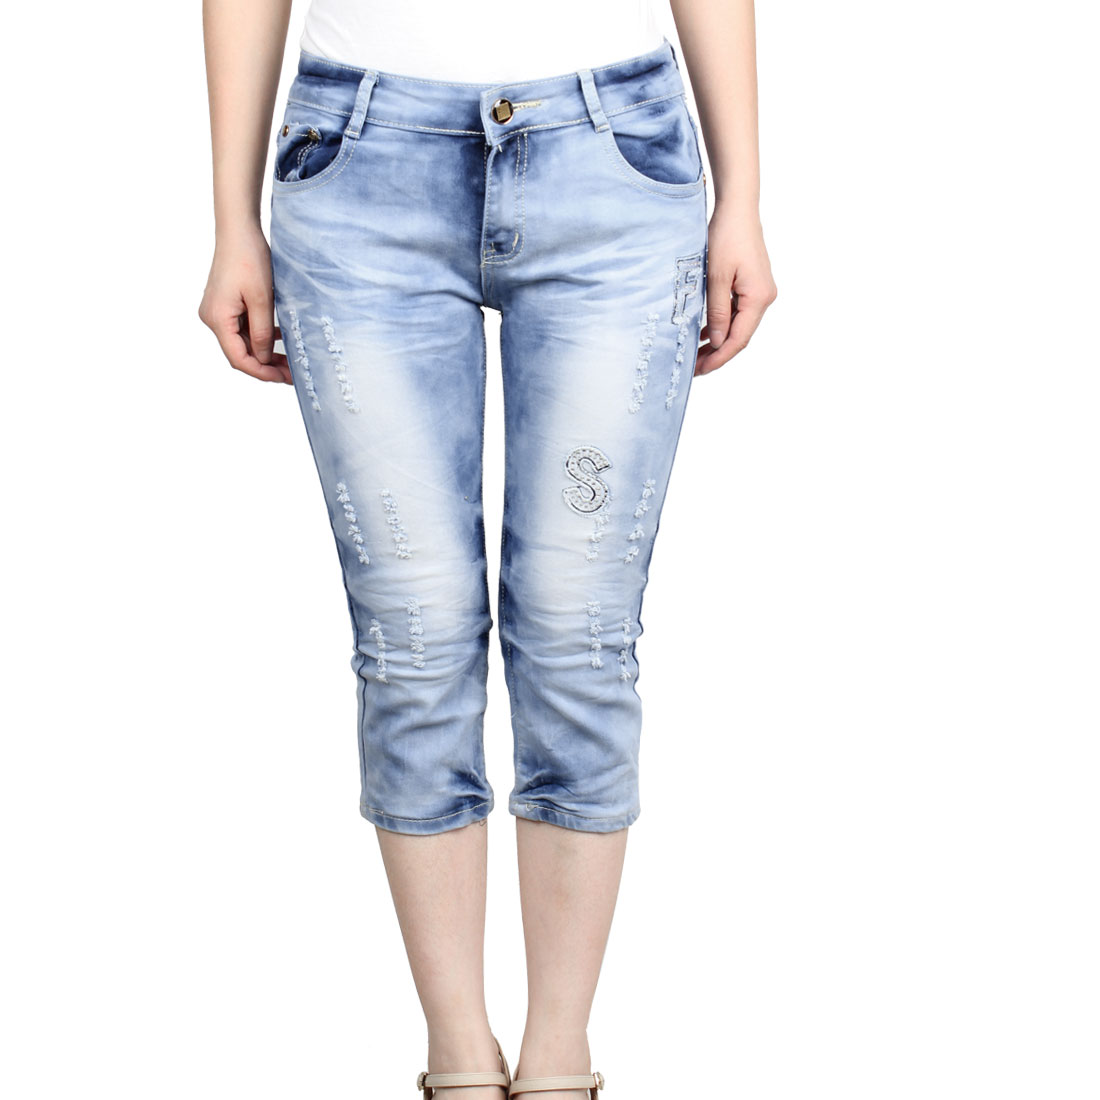 Women Slanting Pockets Button Closure Fashional Cropped Jeans Light Blue S